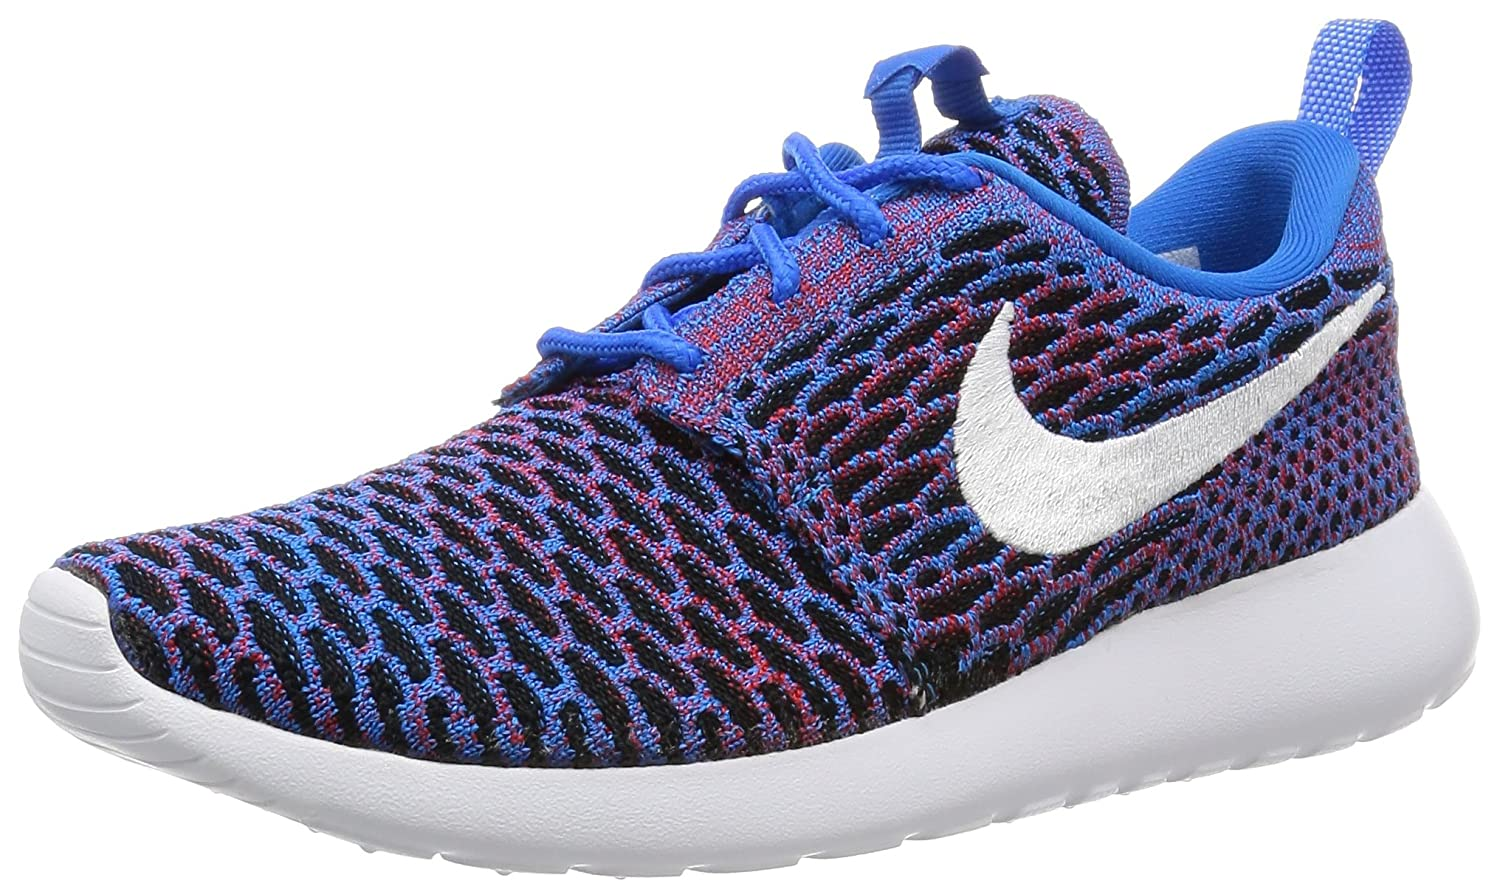 NIKE Womens Roshe One Flyknit Flyknit Colorblock Running Shoes B01HB56O56 7 B(M) US|Photo Blue/White-Red